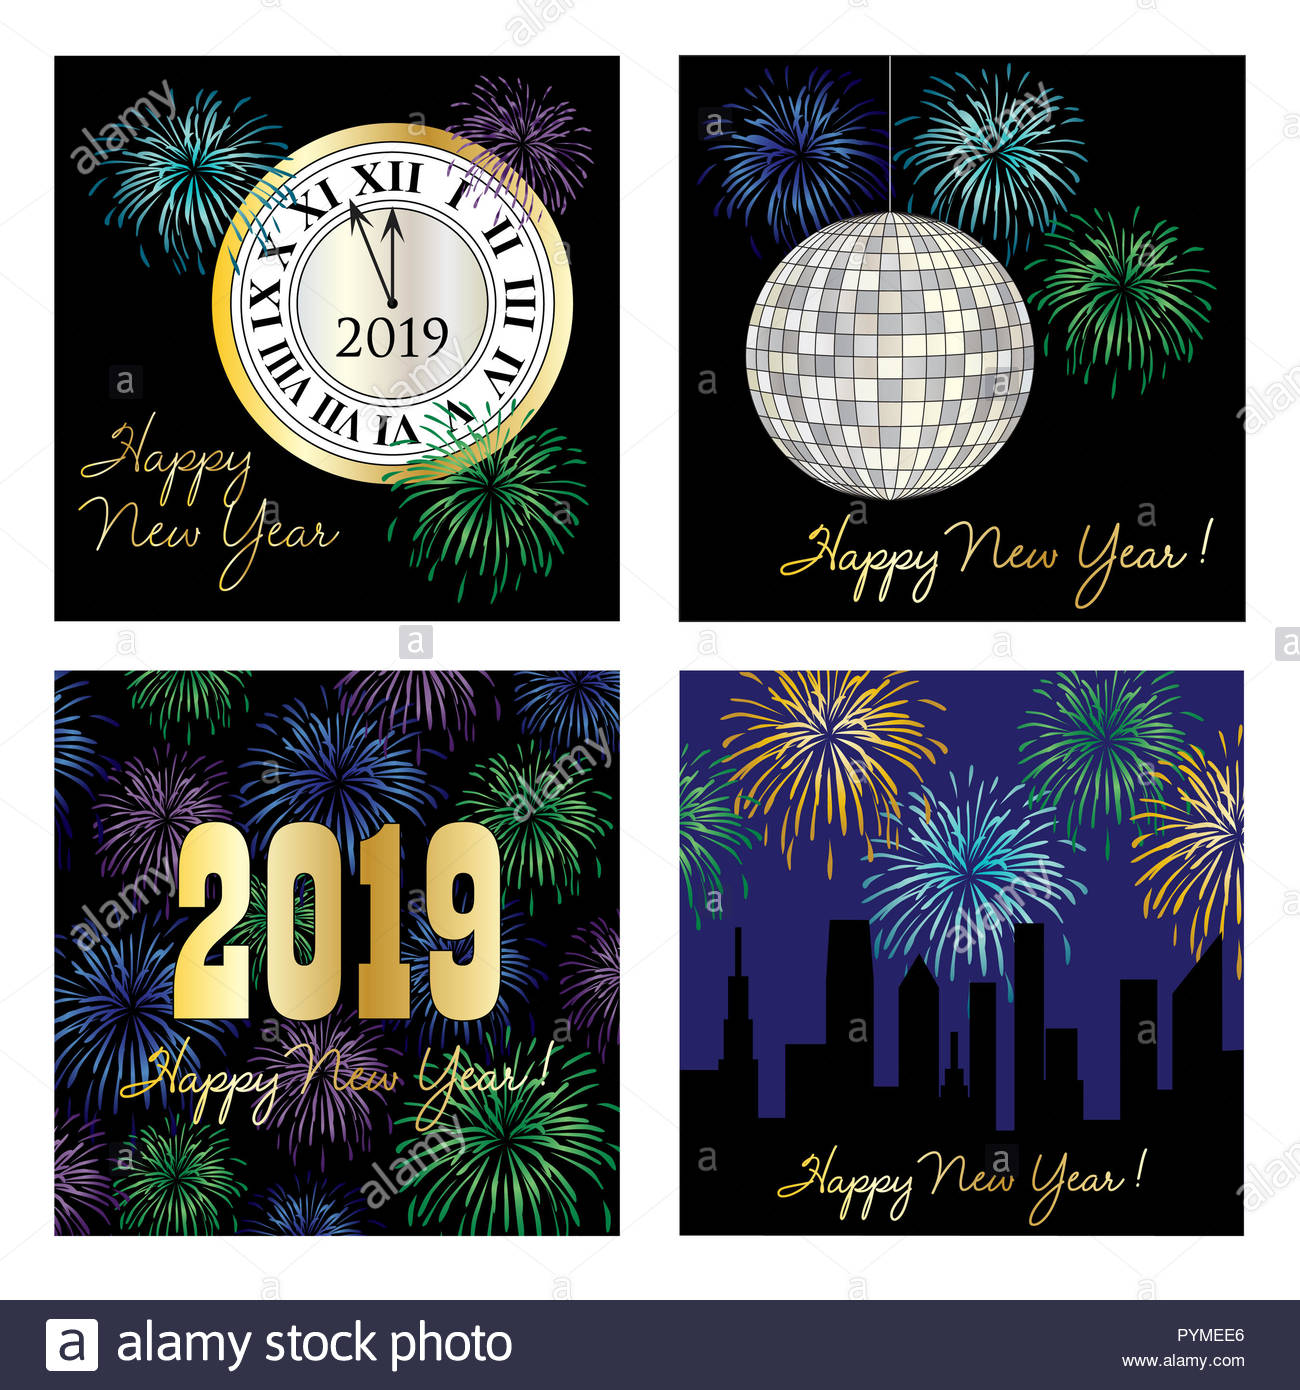 new years eve 2019 square vector graphics - Stock Image